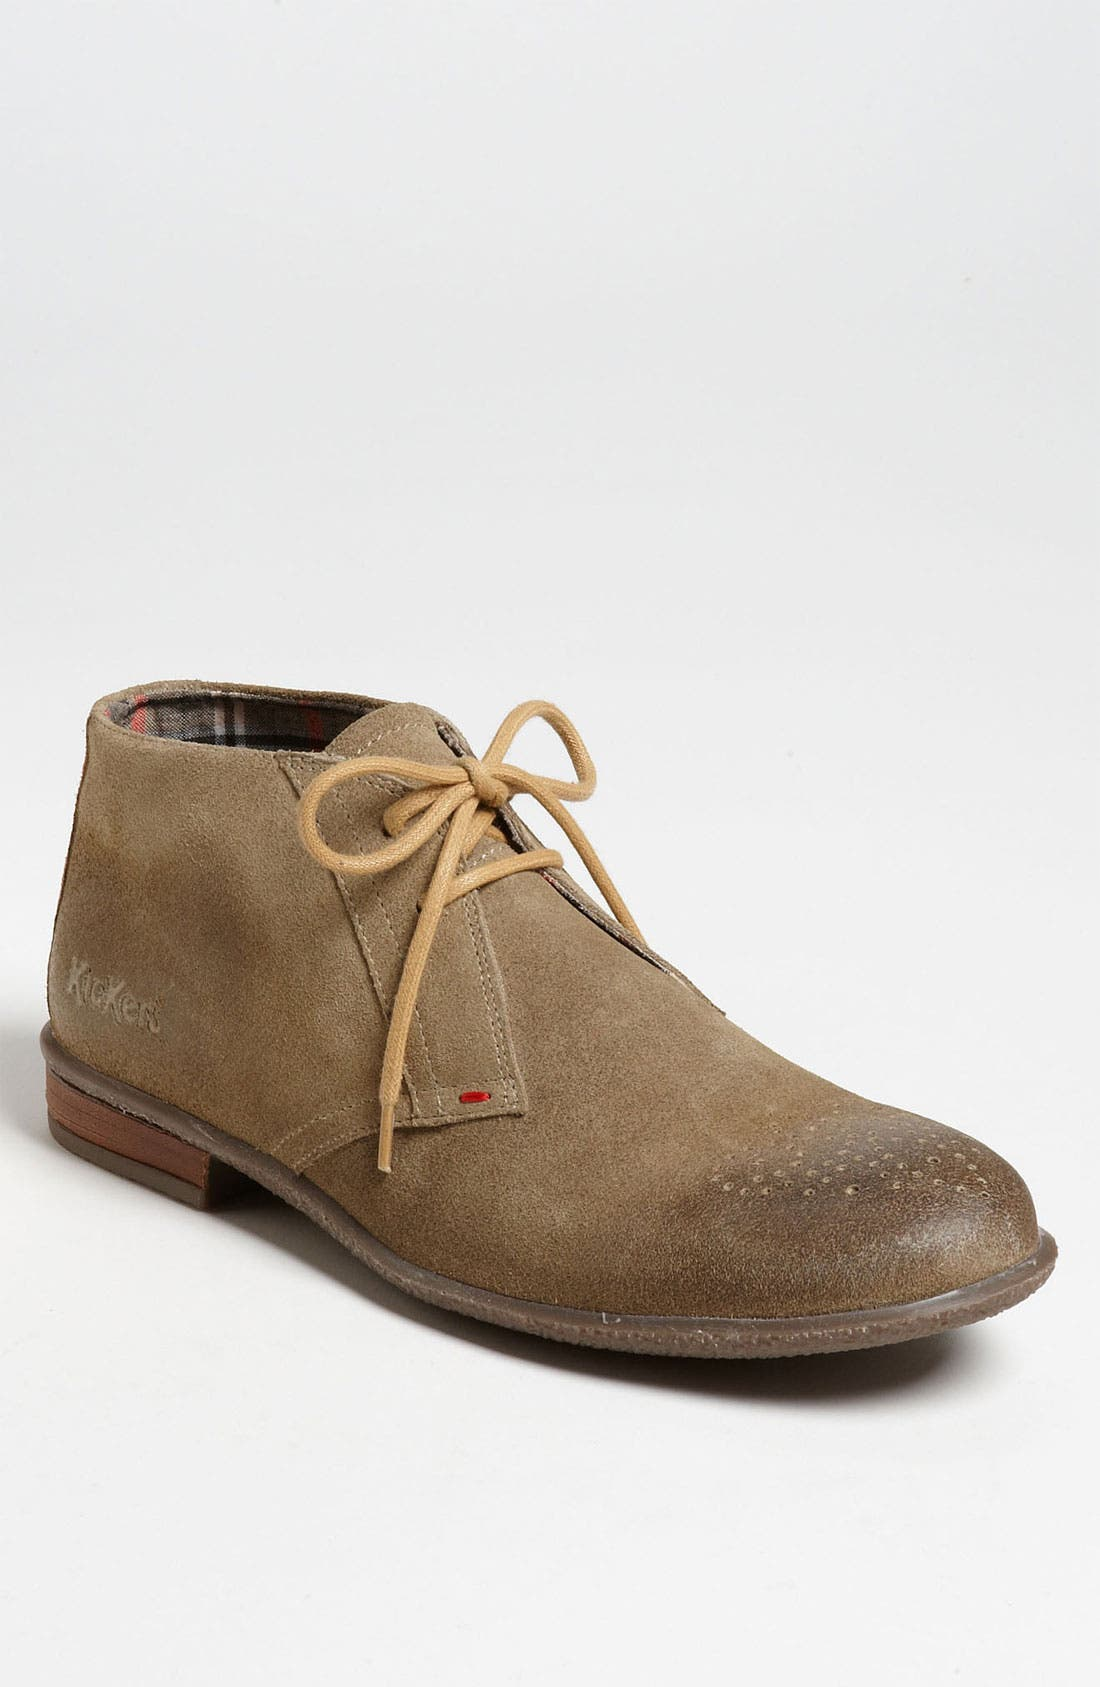 Alternate Image 1 Selected - Kickers 'Centrix' Boot (Online Only)